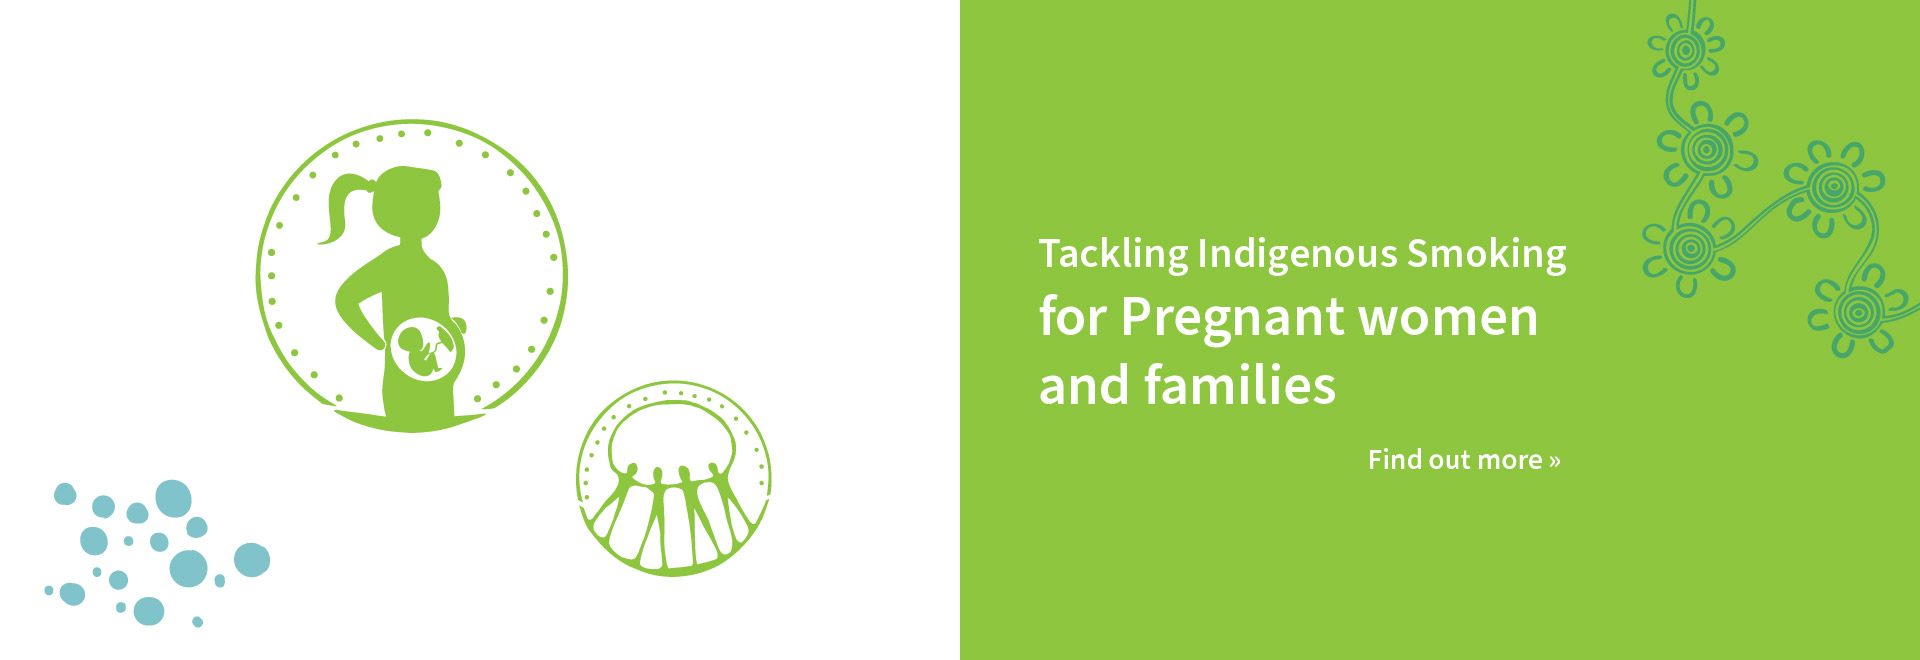 Pregnant women and families